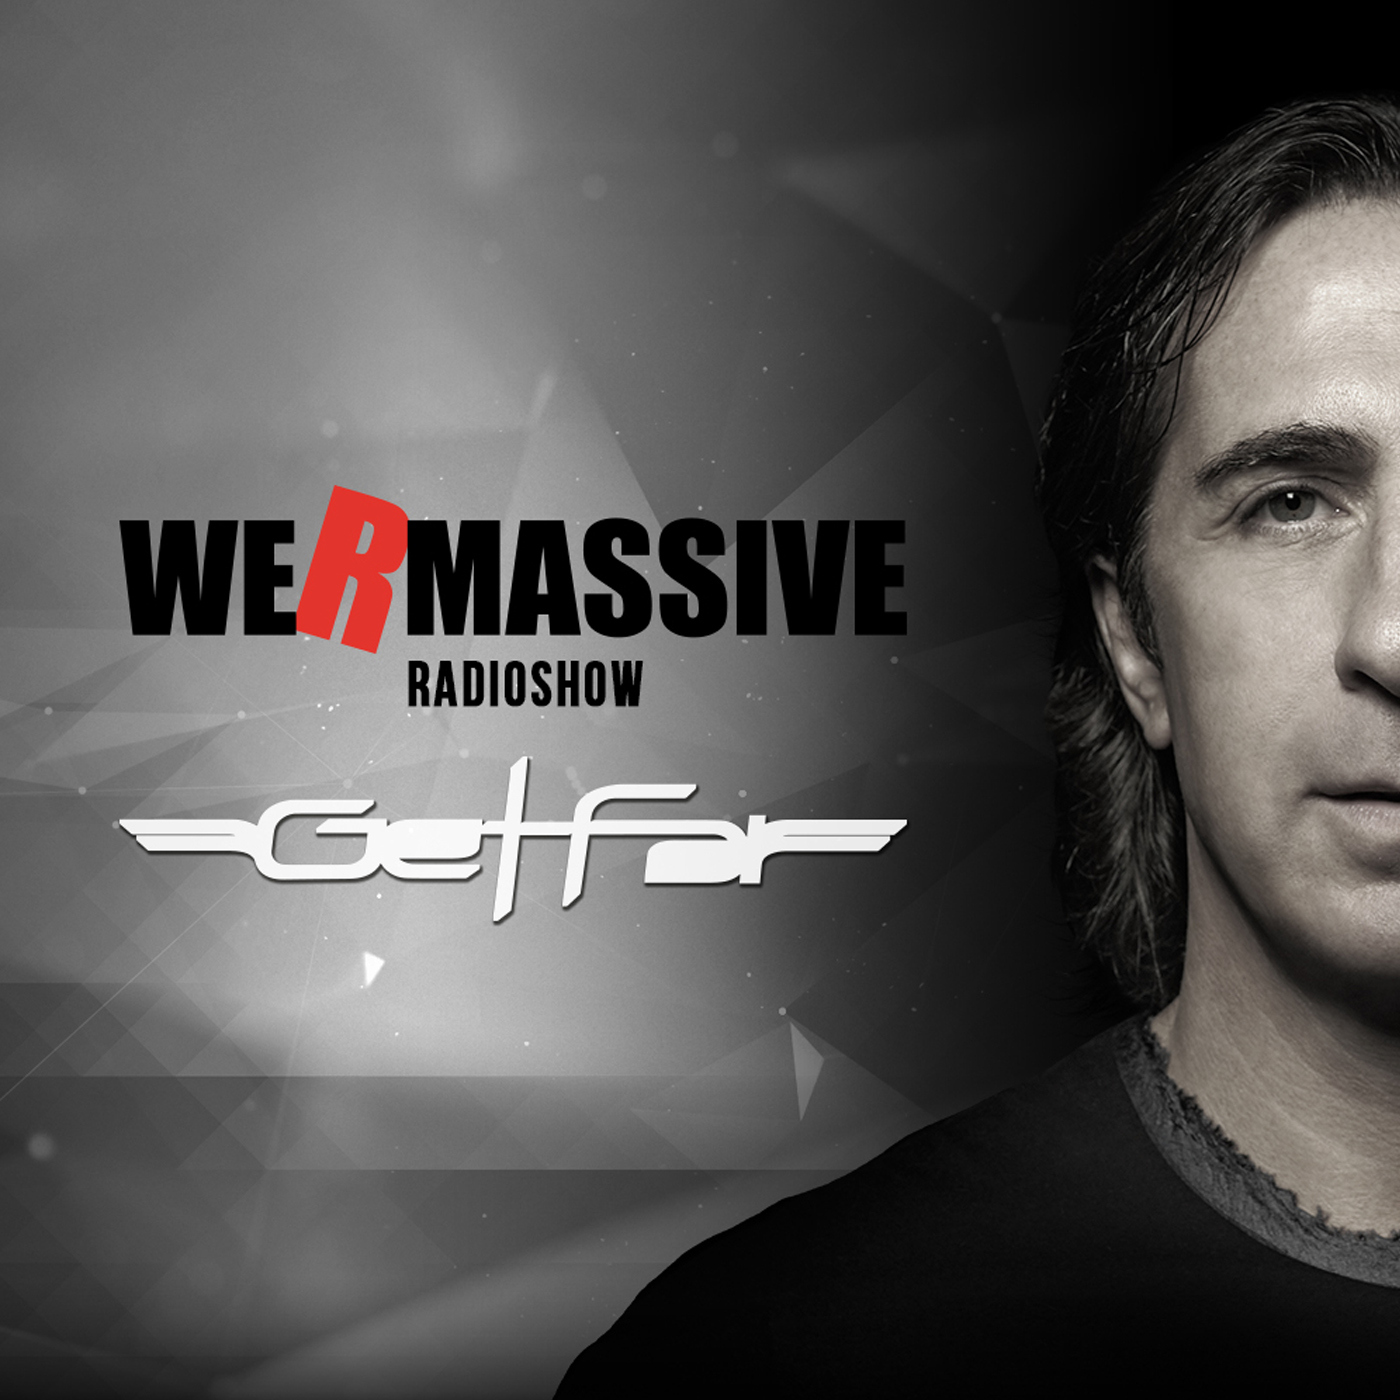 We Are Massive Radio Show by Get Far